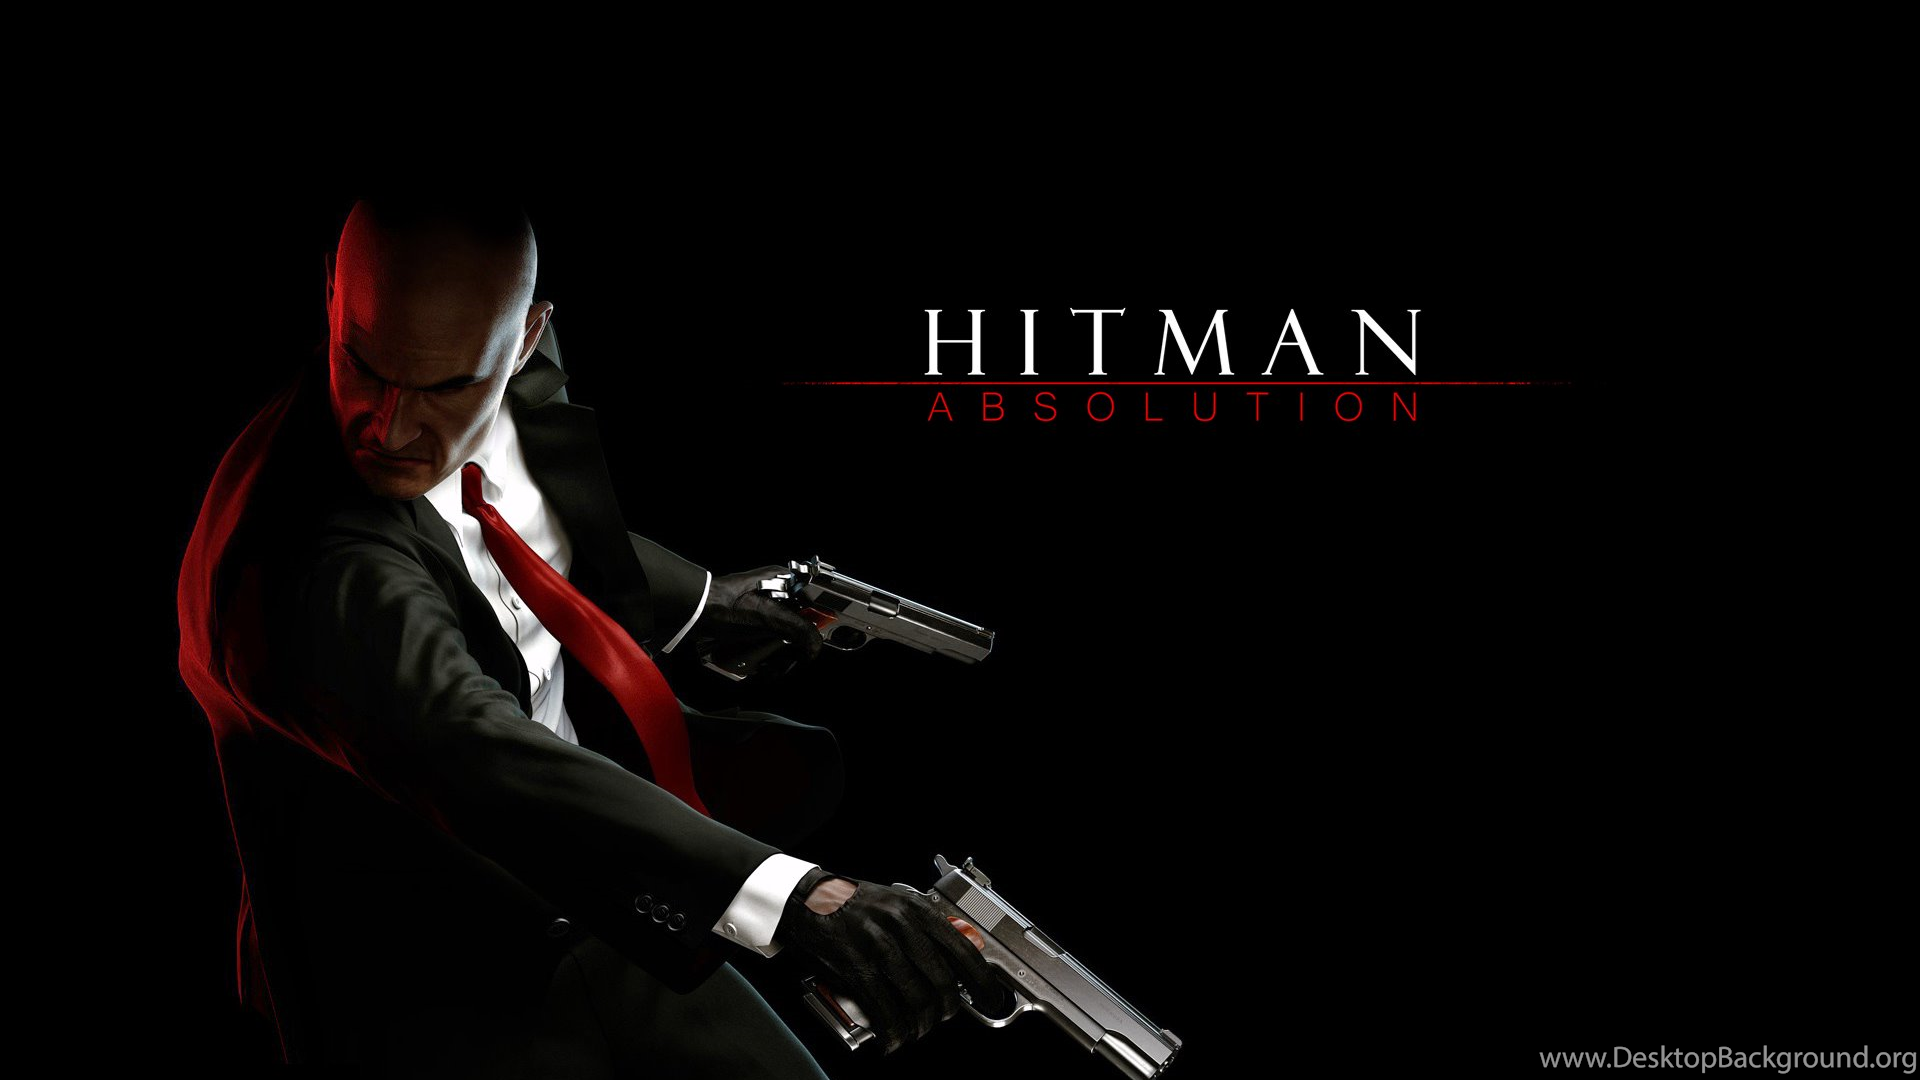 HQ Hitman Wallpapers Desktop Background